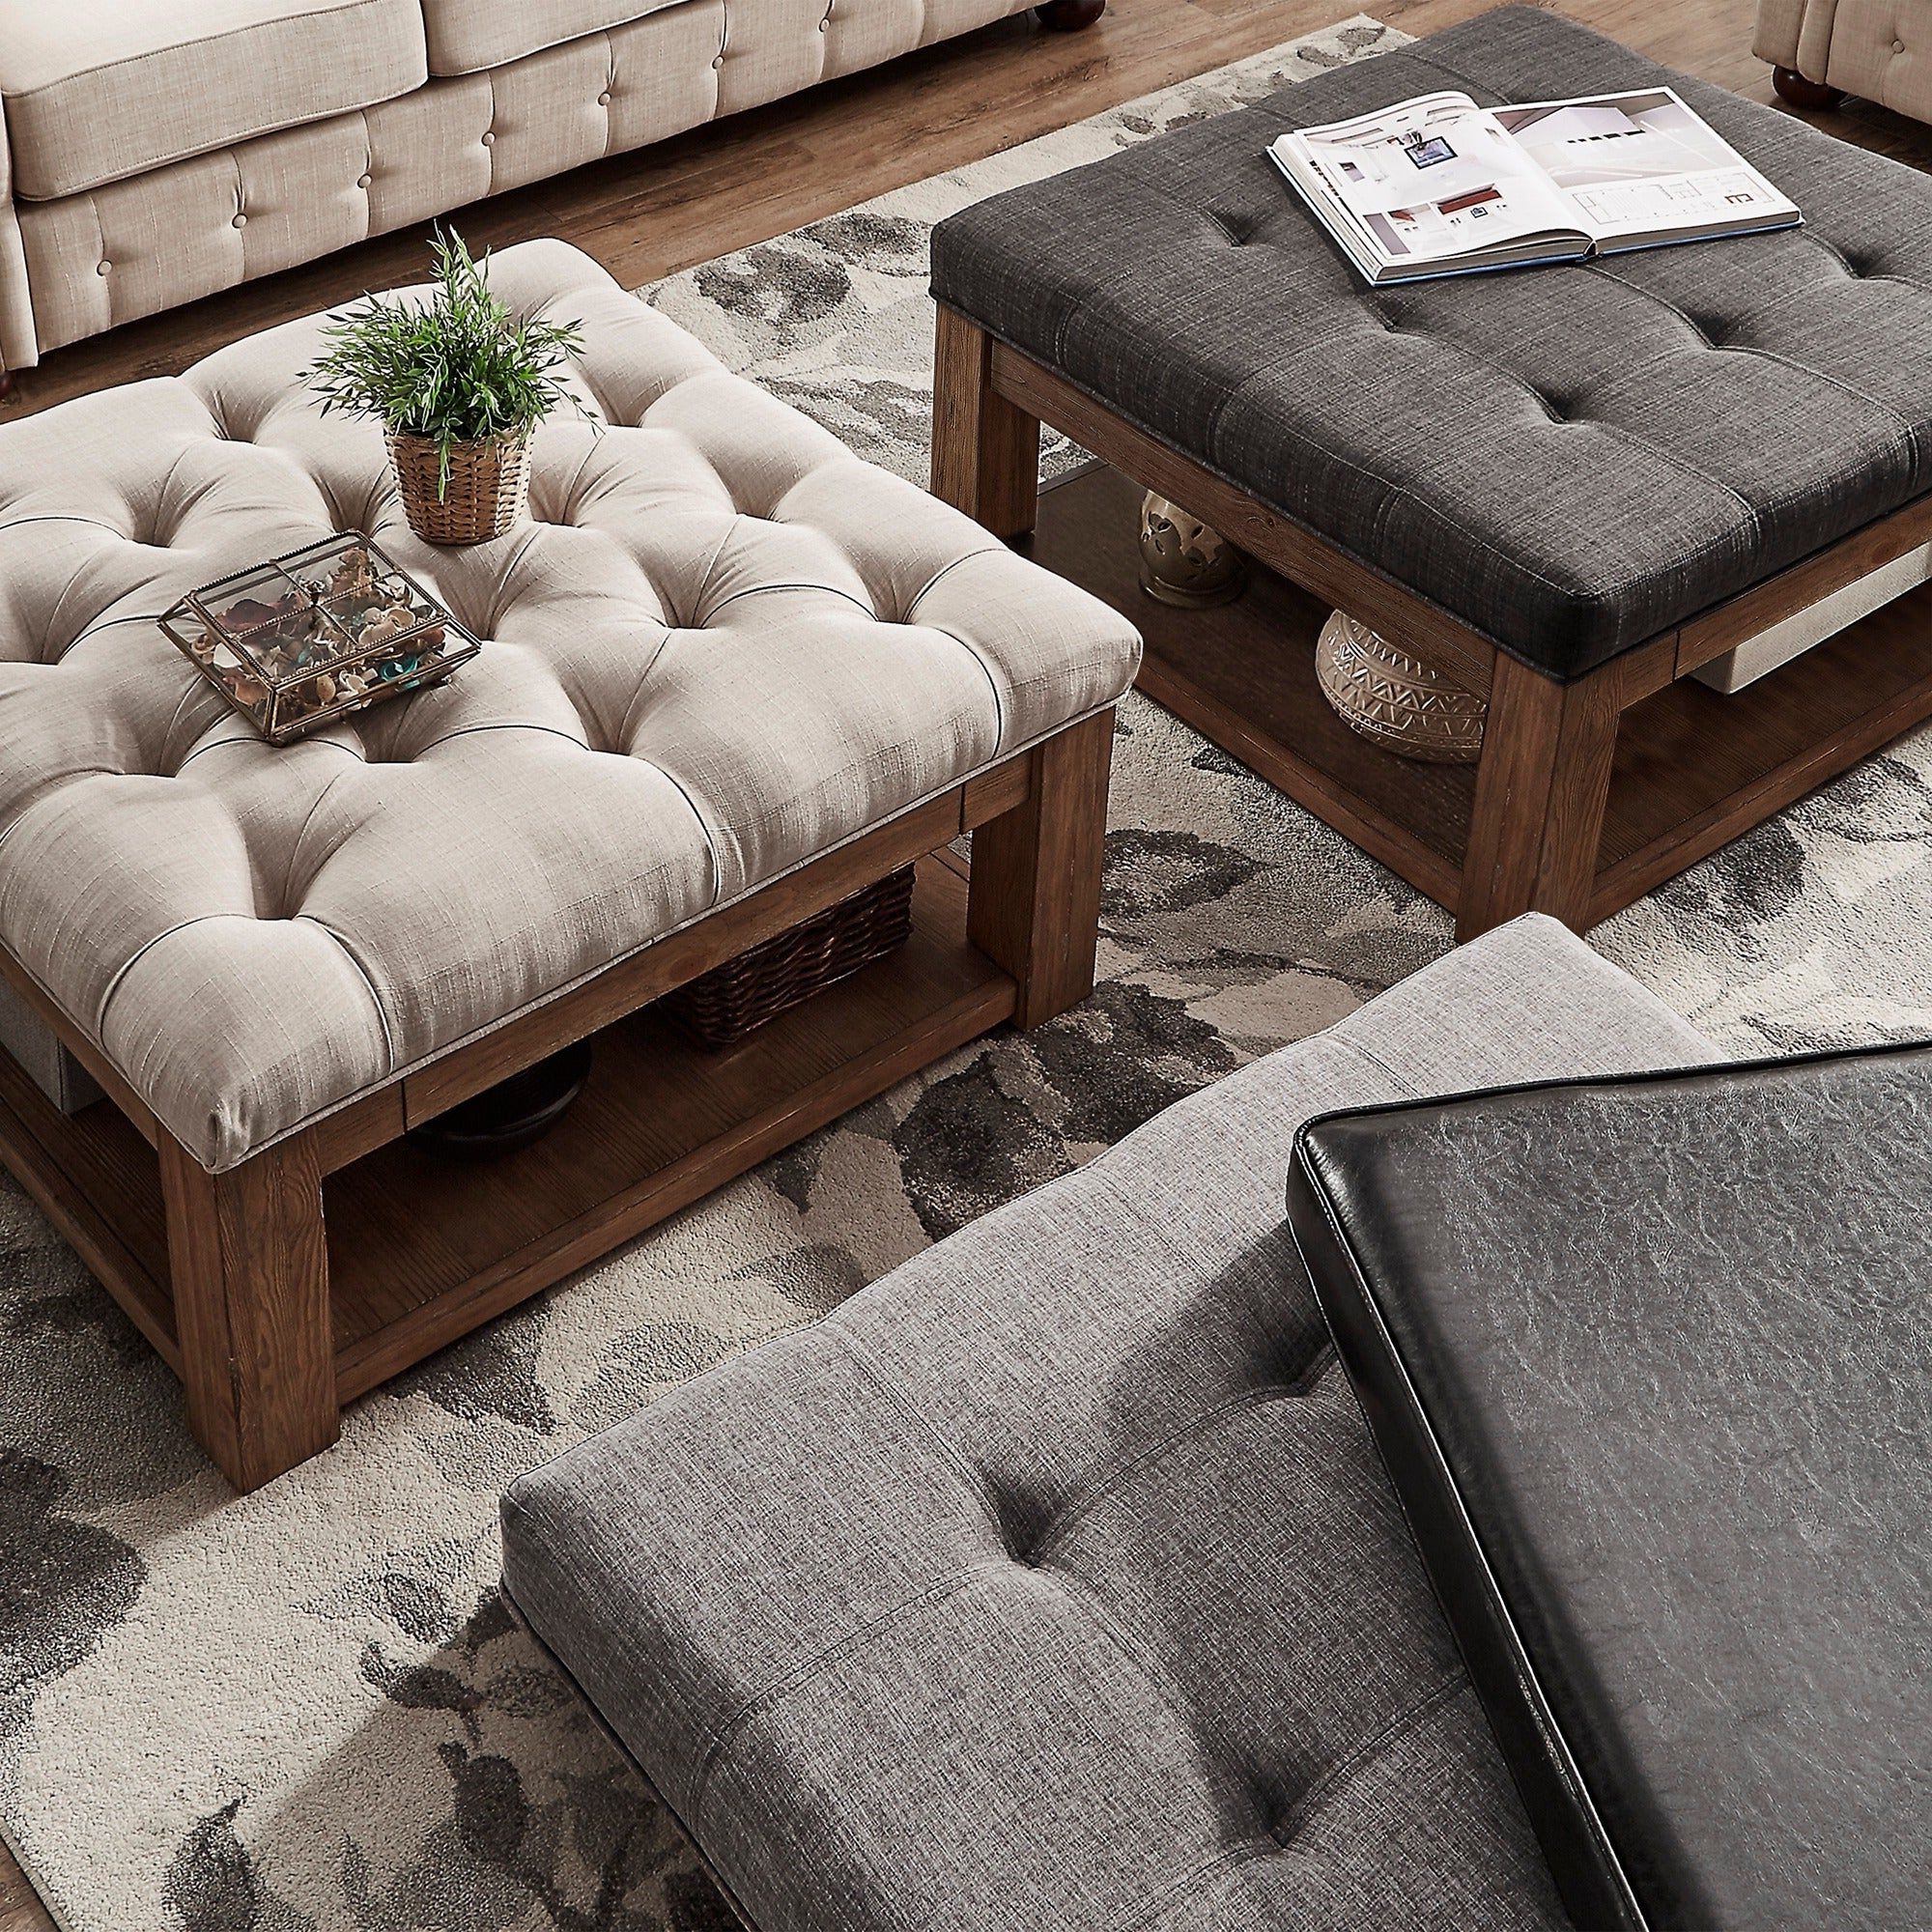 Widely Used Lennon Pine Planked Storage Ottoman Coffee Tables Intended For Details About Lennon Pine Square Storage Ottoman Coffee Tableinspire Q (View 10 of 20)